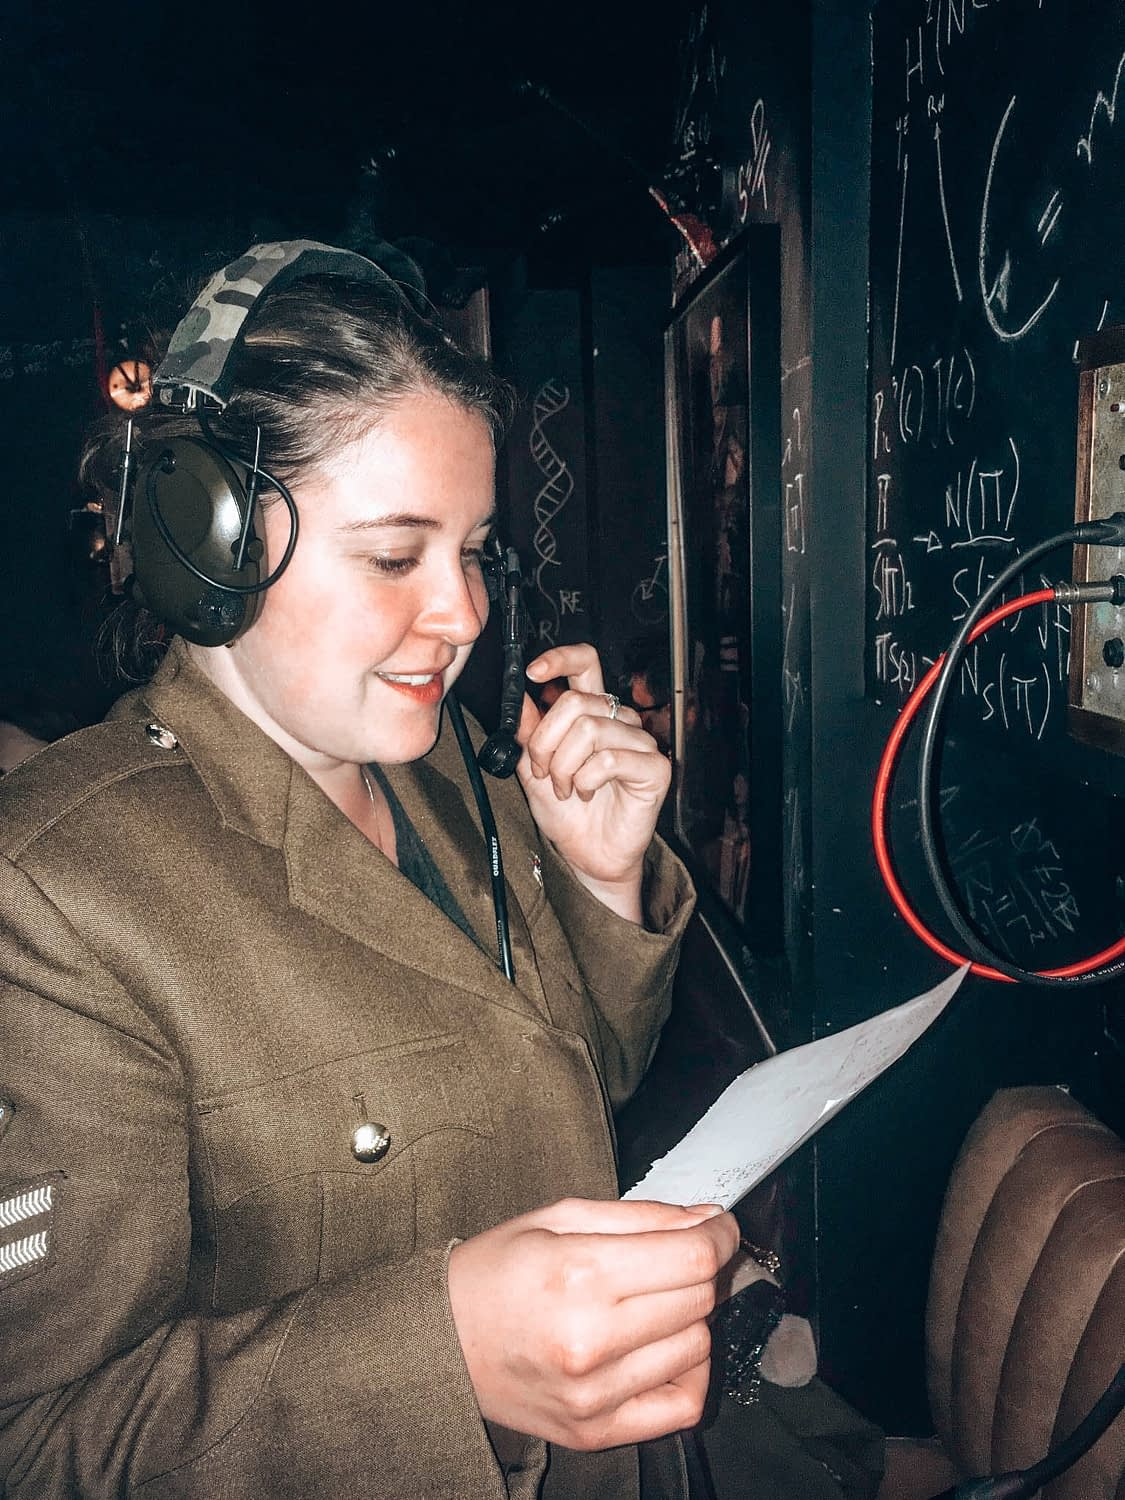 Unique Themed Cocktail Bars in London - Girl speaking into an old telephone wearing military uniform